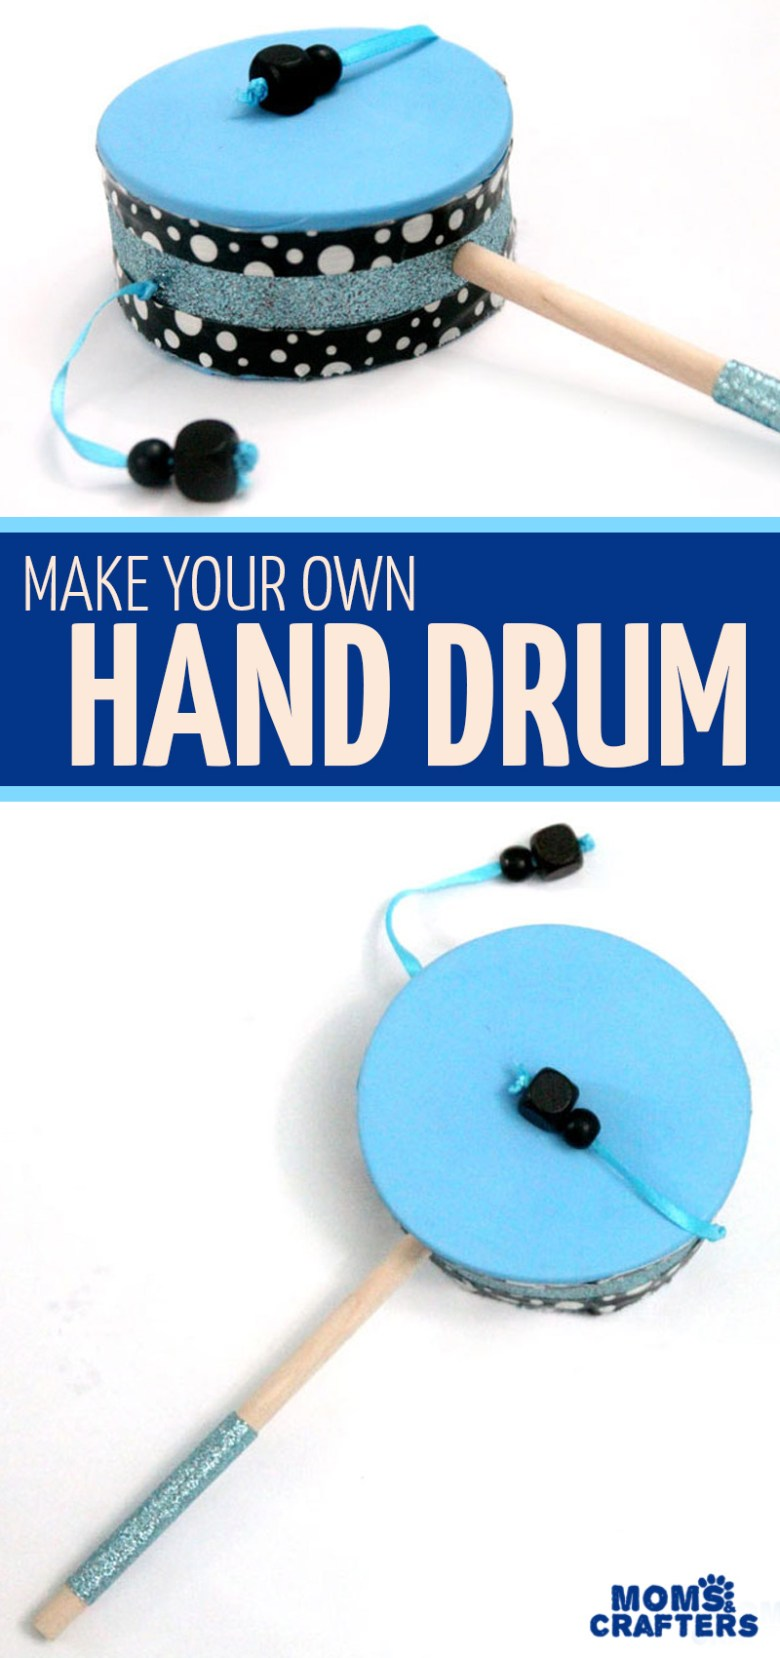 DIY Hand Drum and other Carnaval crafts for kids